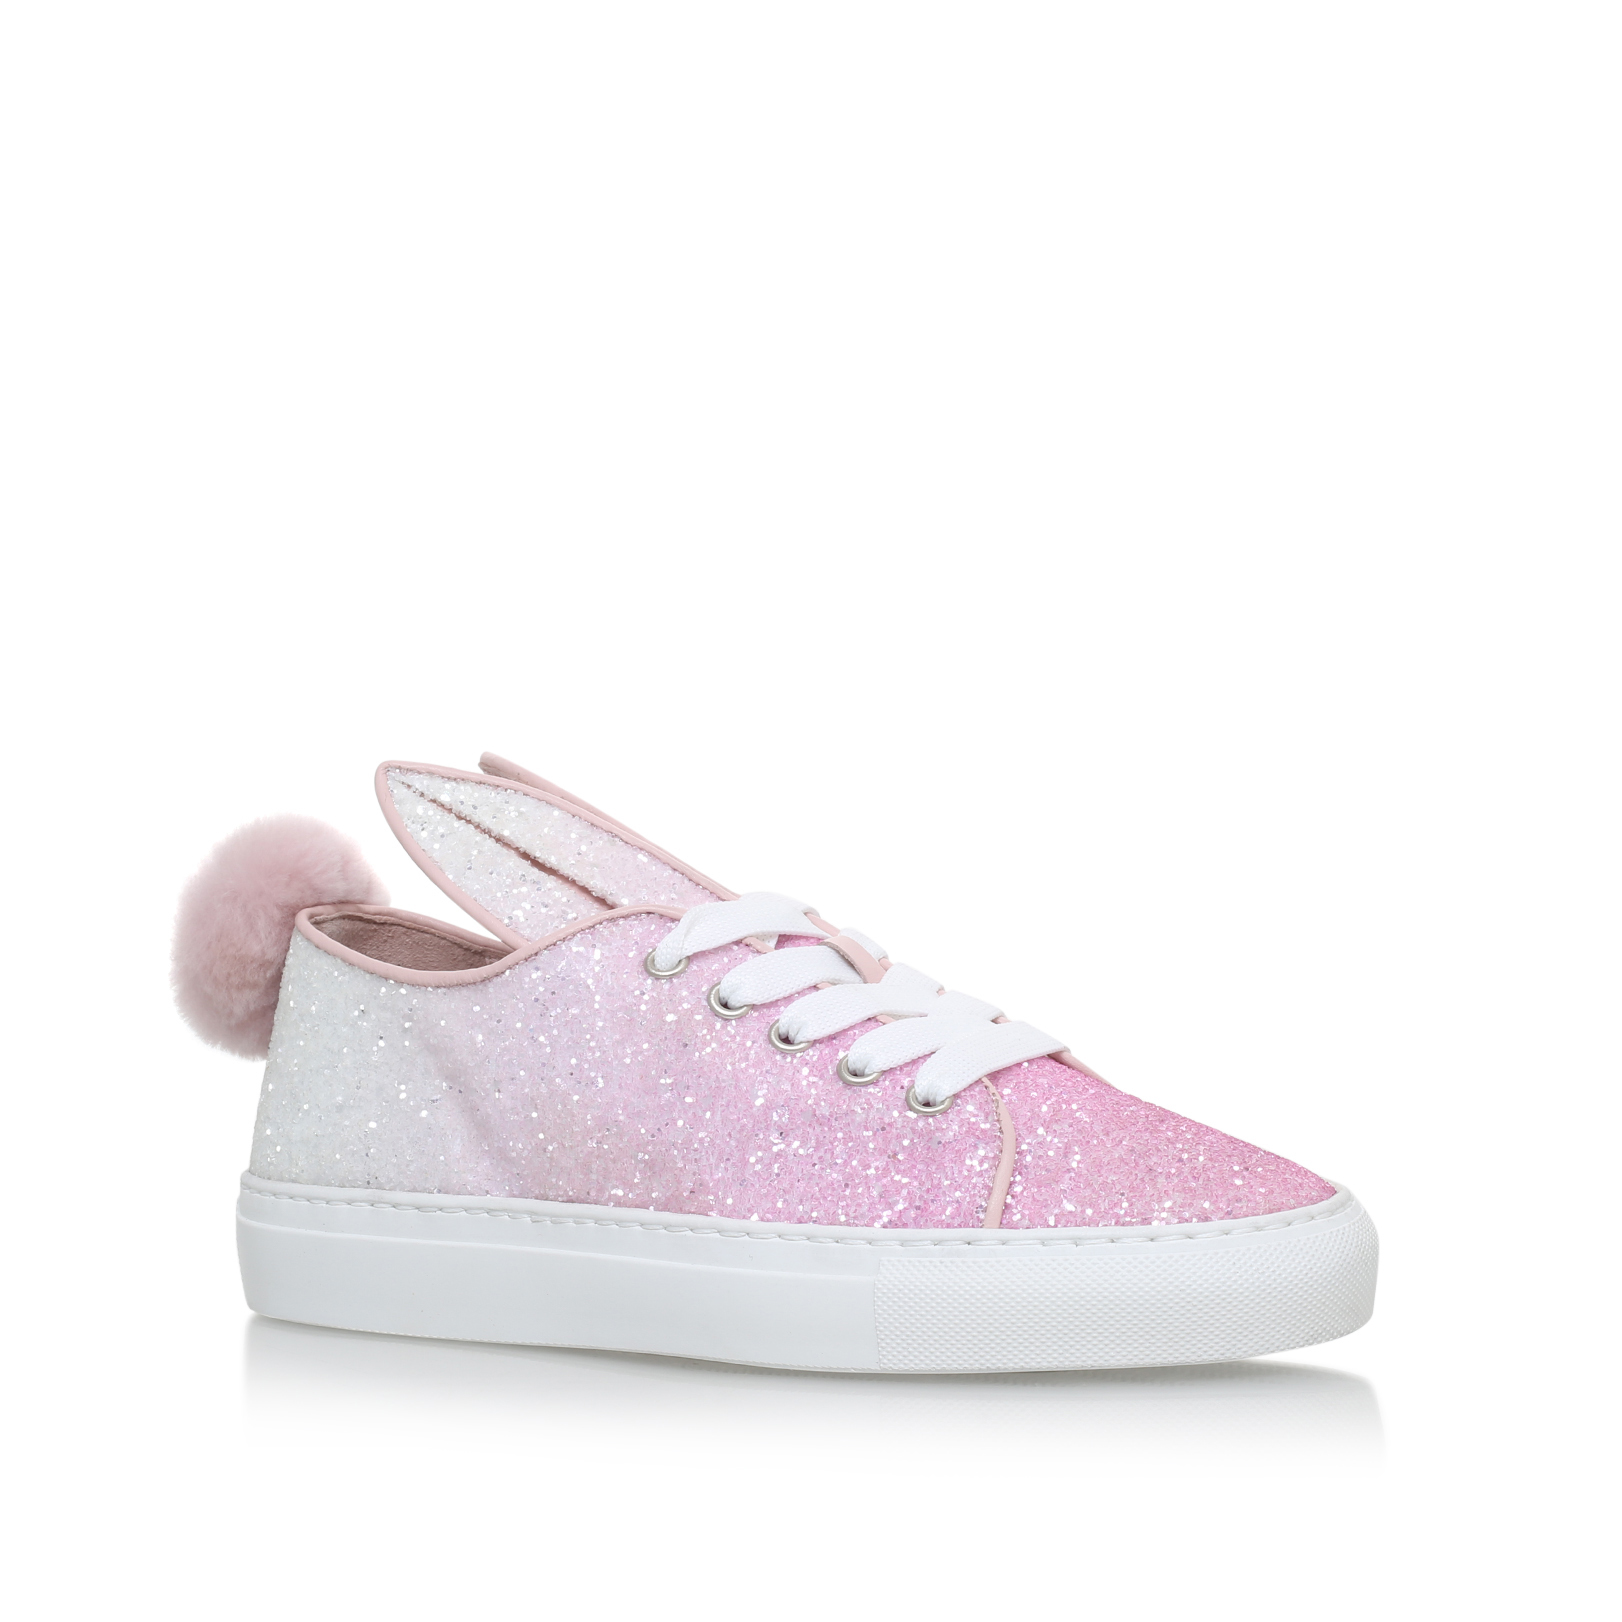 TAIL SNEAKS OMBRE EXC